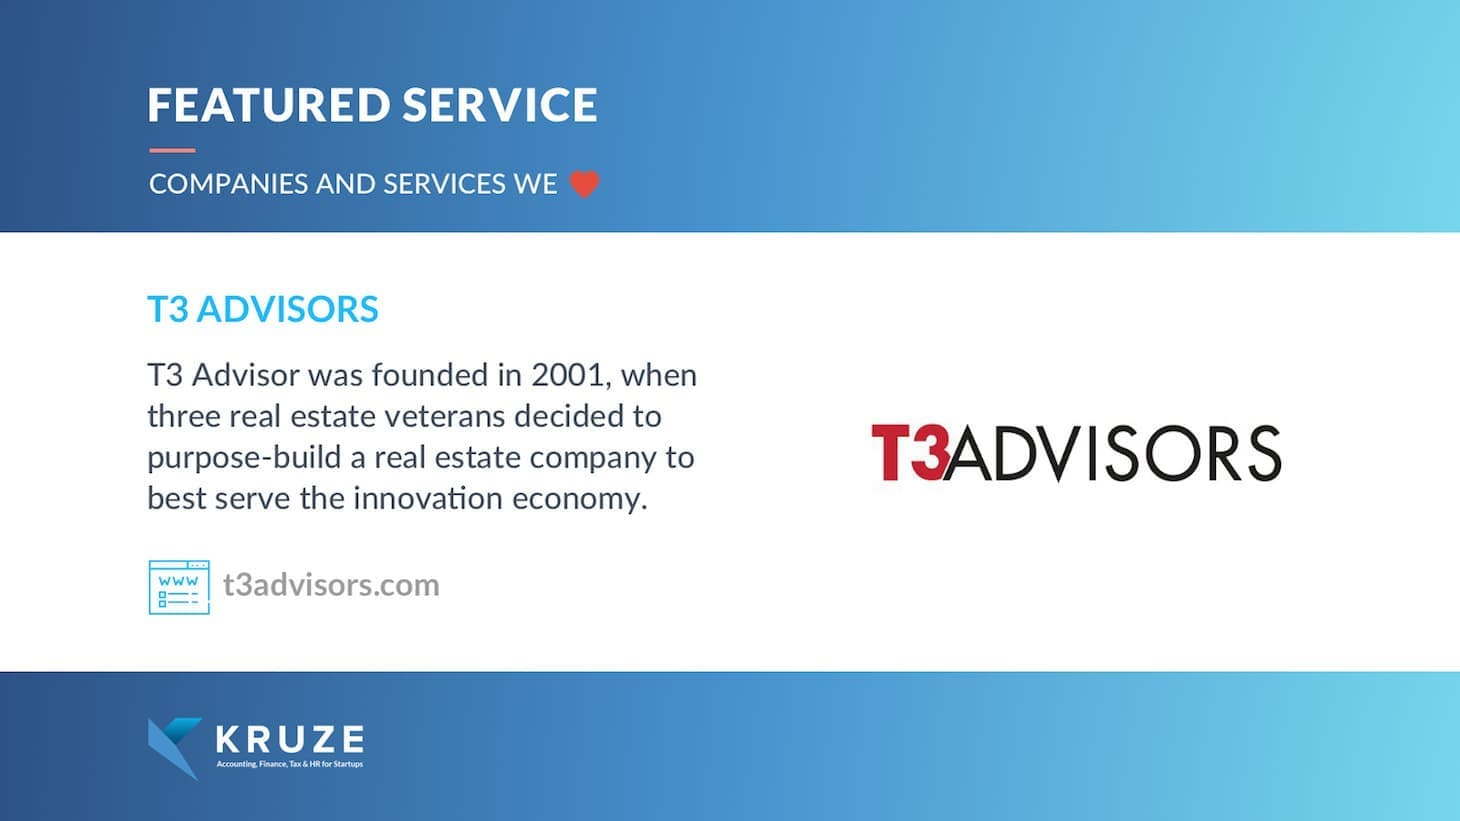 Featured Service - T3 Advisors